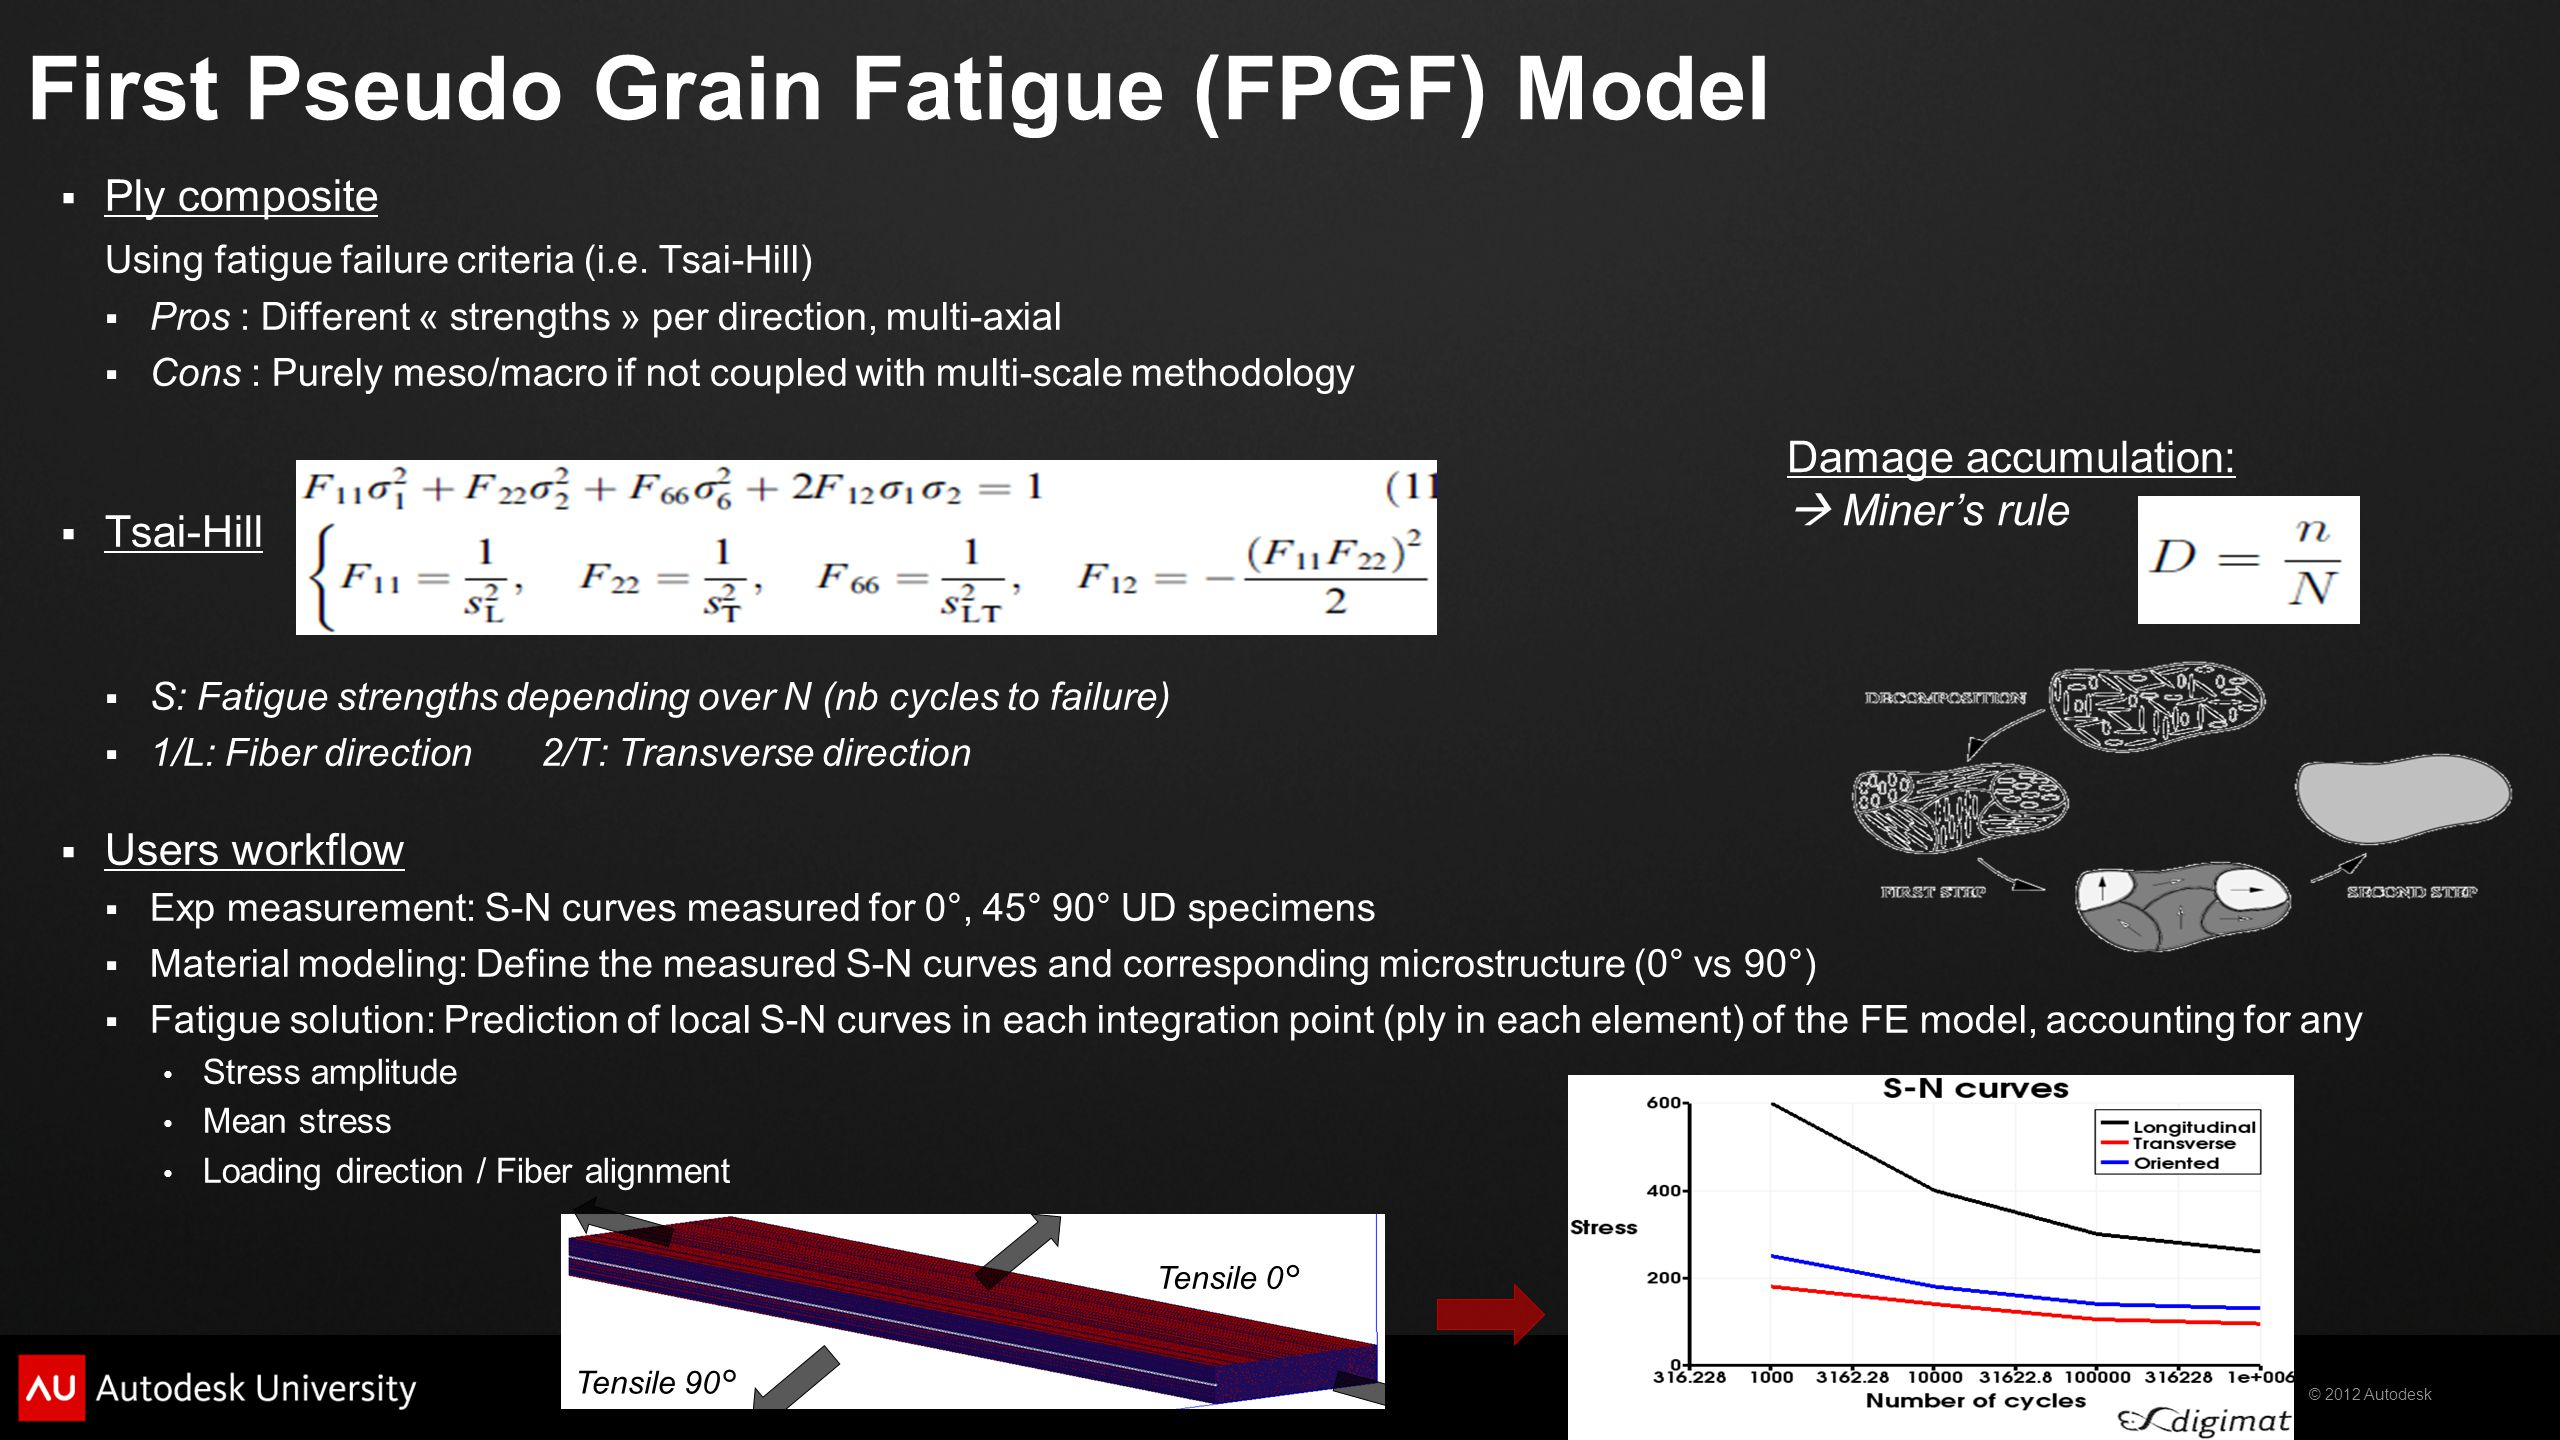 First Pseudo Grain Fatigue (FPGF) Model